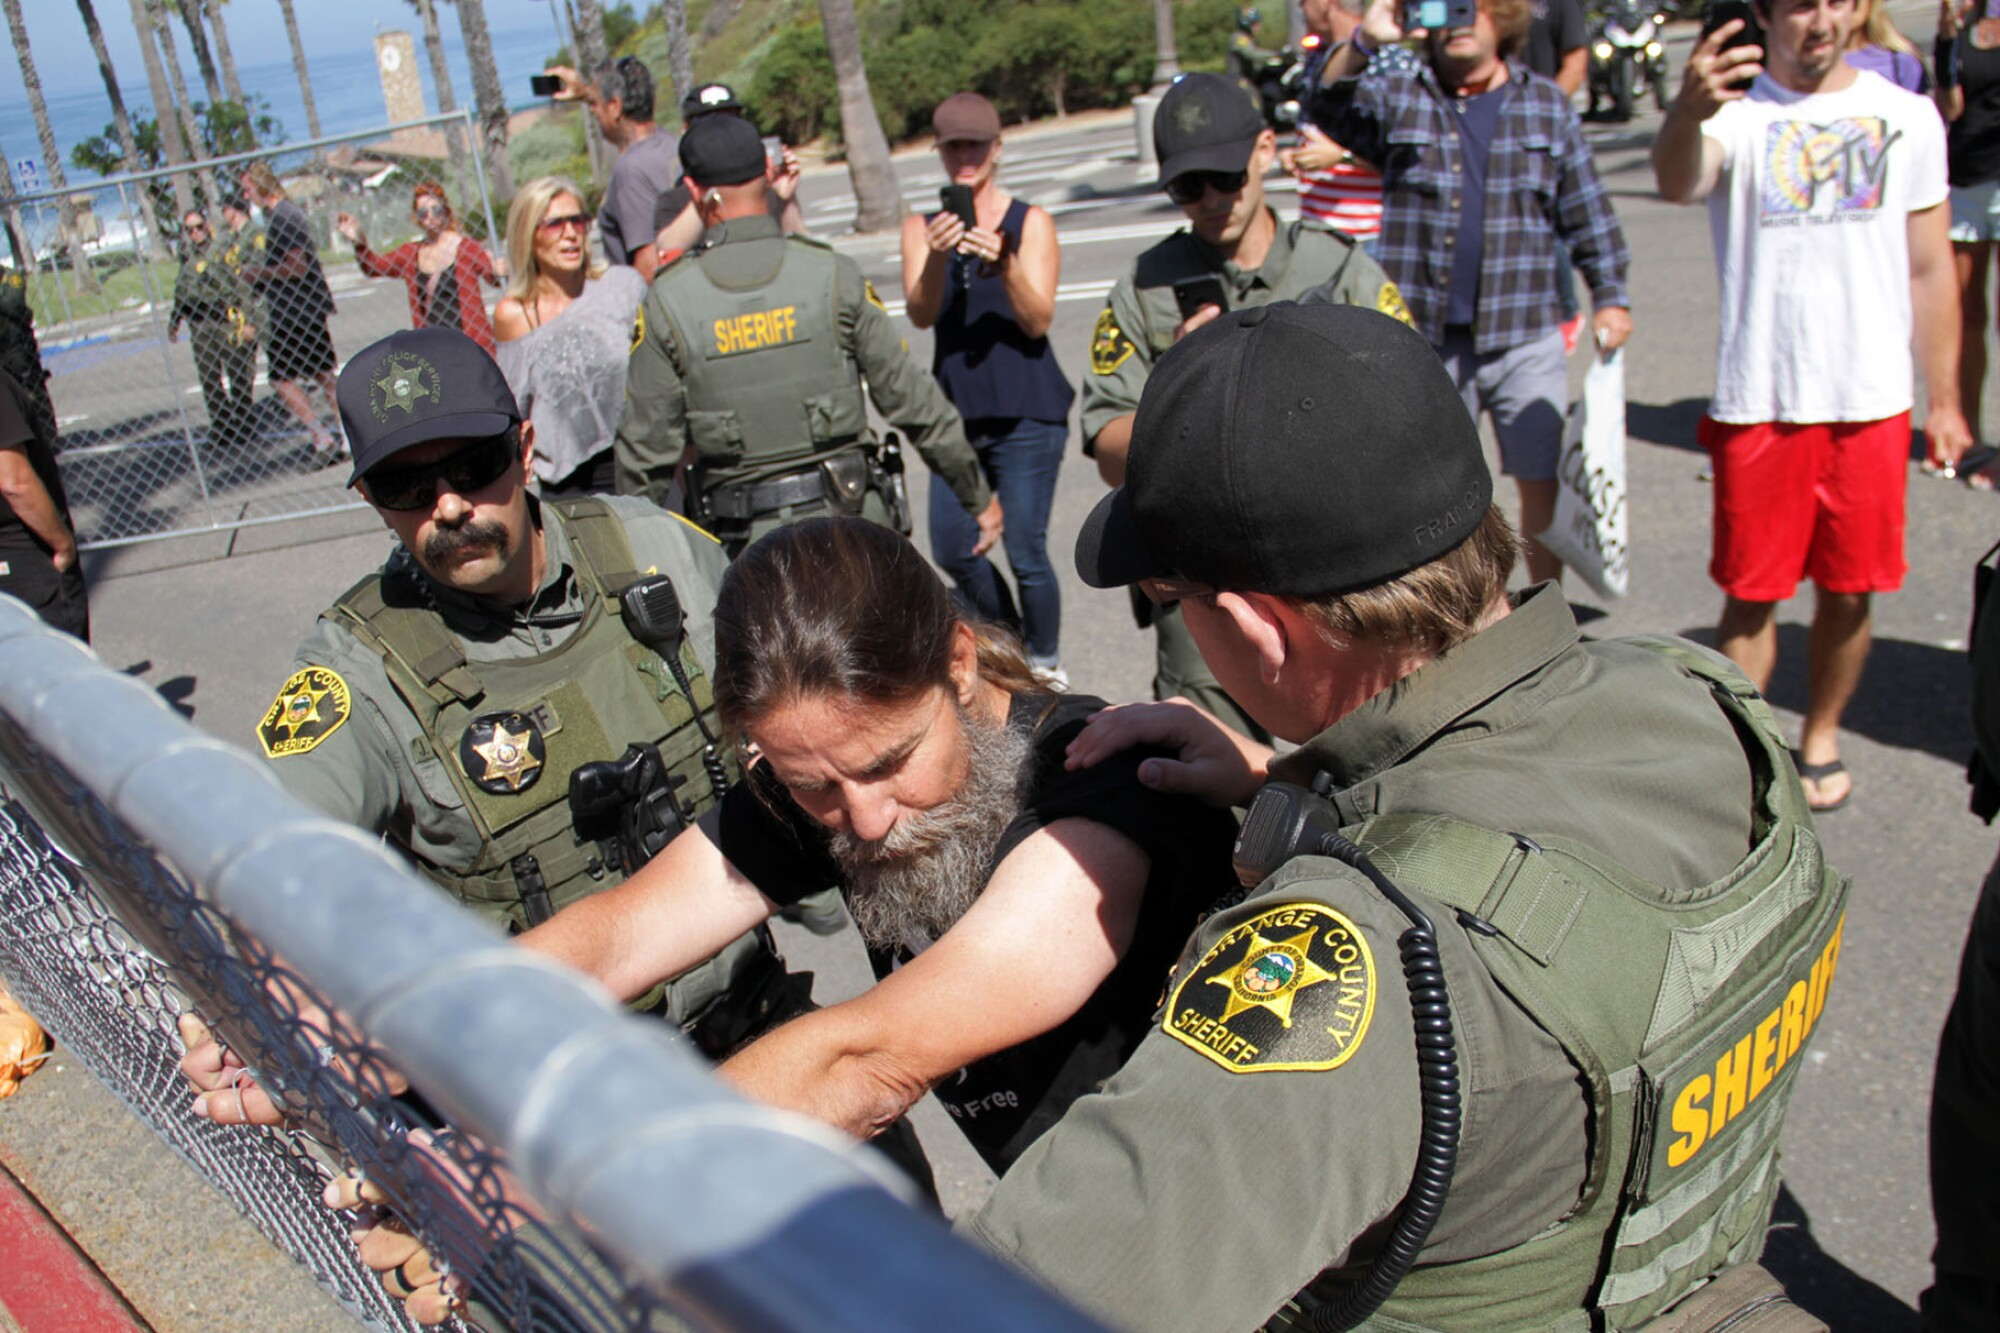 Alan Hostetter grips a fence as sheriff's deputies stand nearby